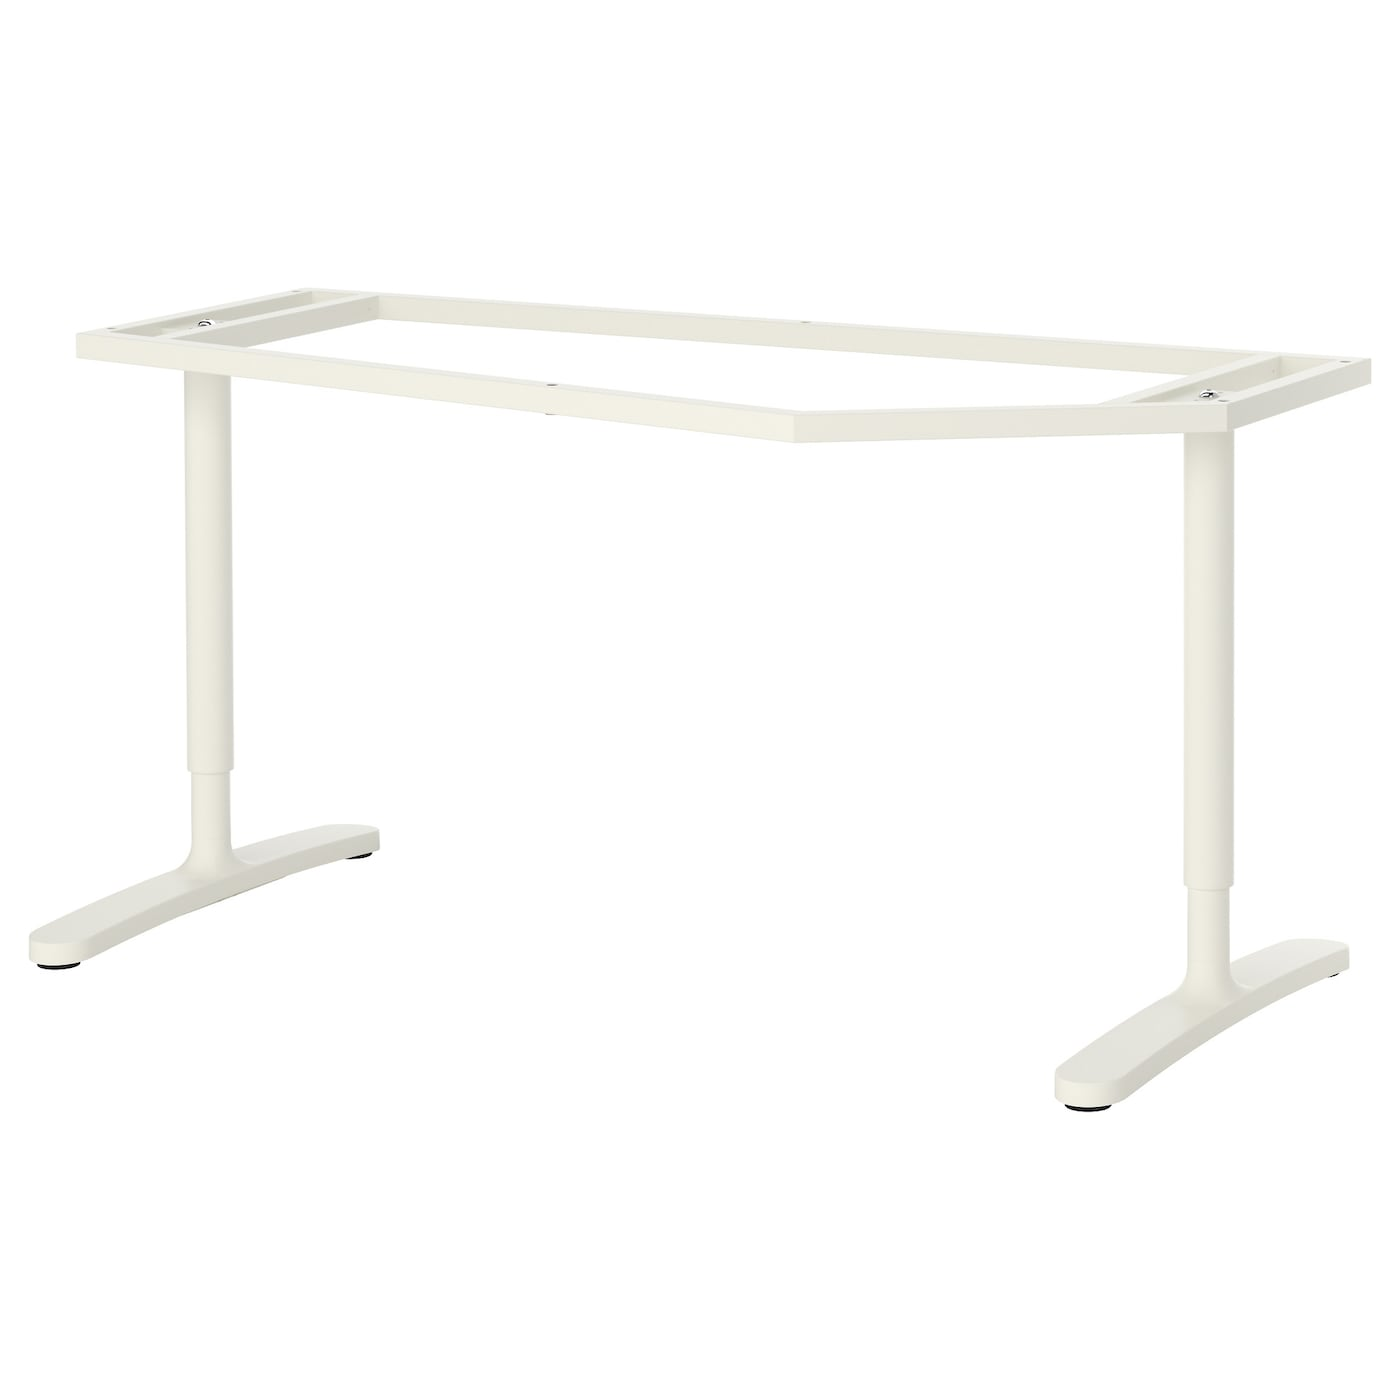 IKEA BEKANT underframe for 5-sided table top